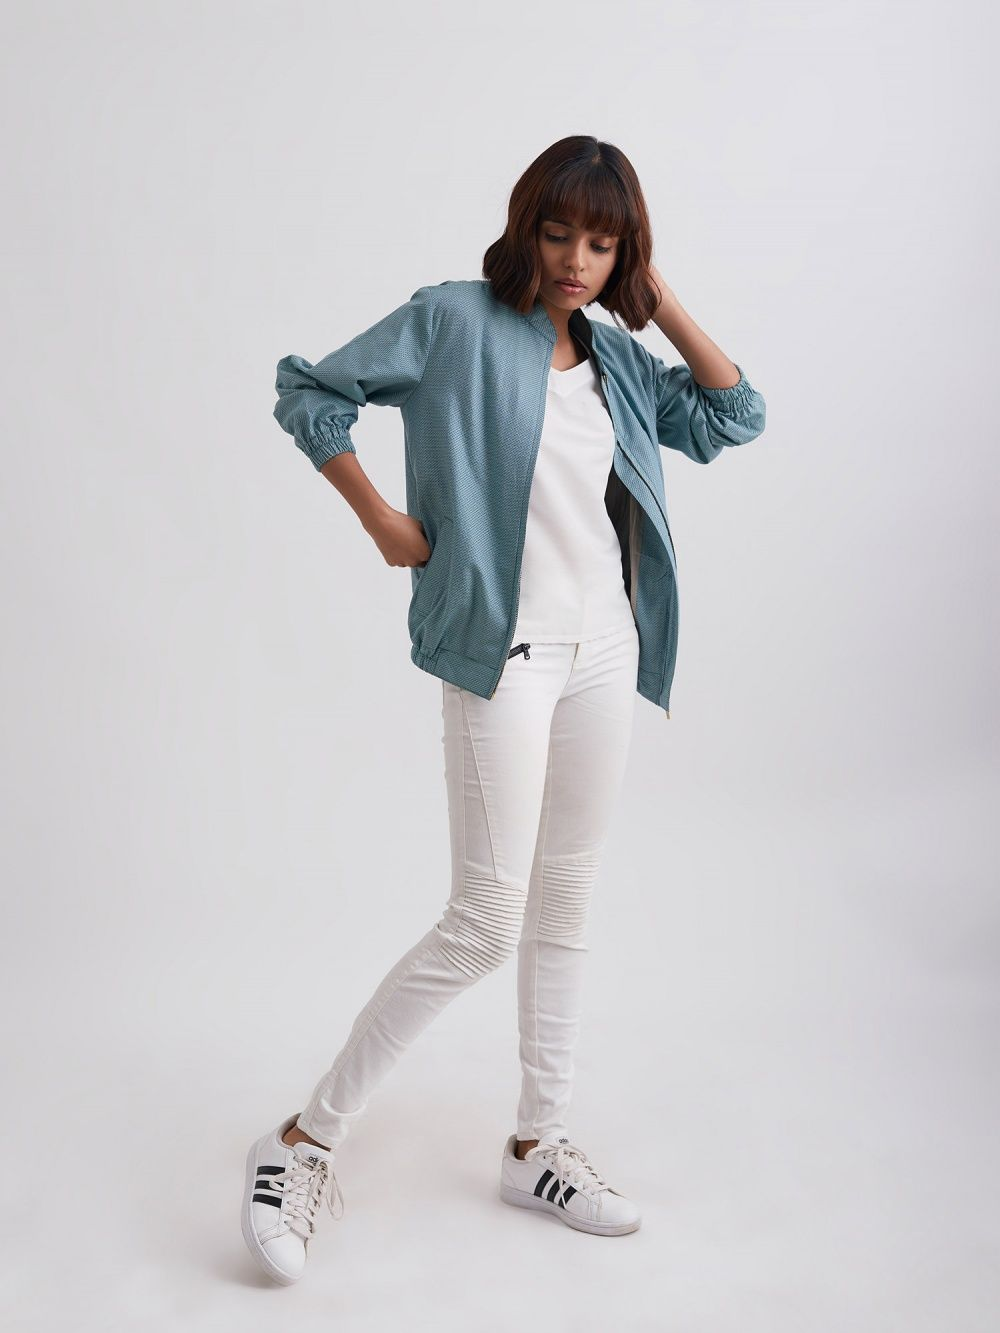 c0ccd48a4345c All ABT June Jackets : Buy All ABT June On The Go Jacket Online ...